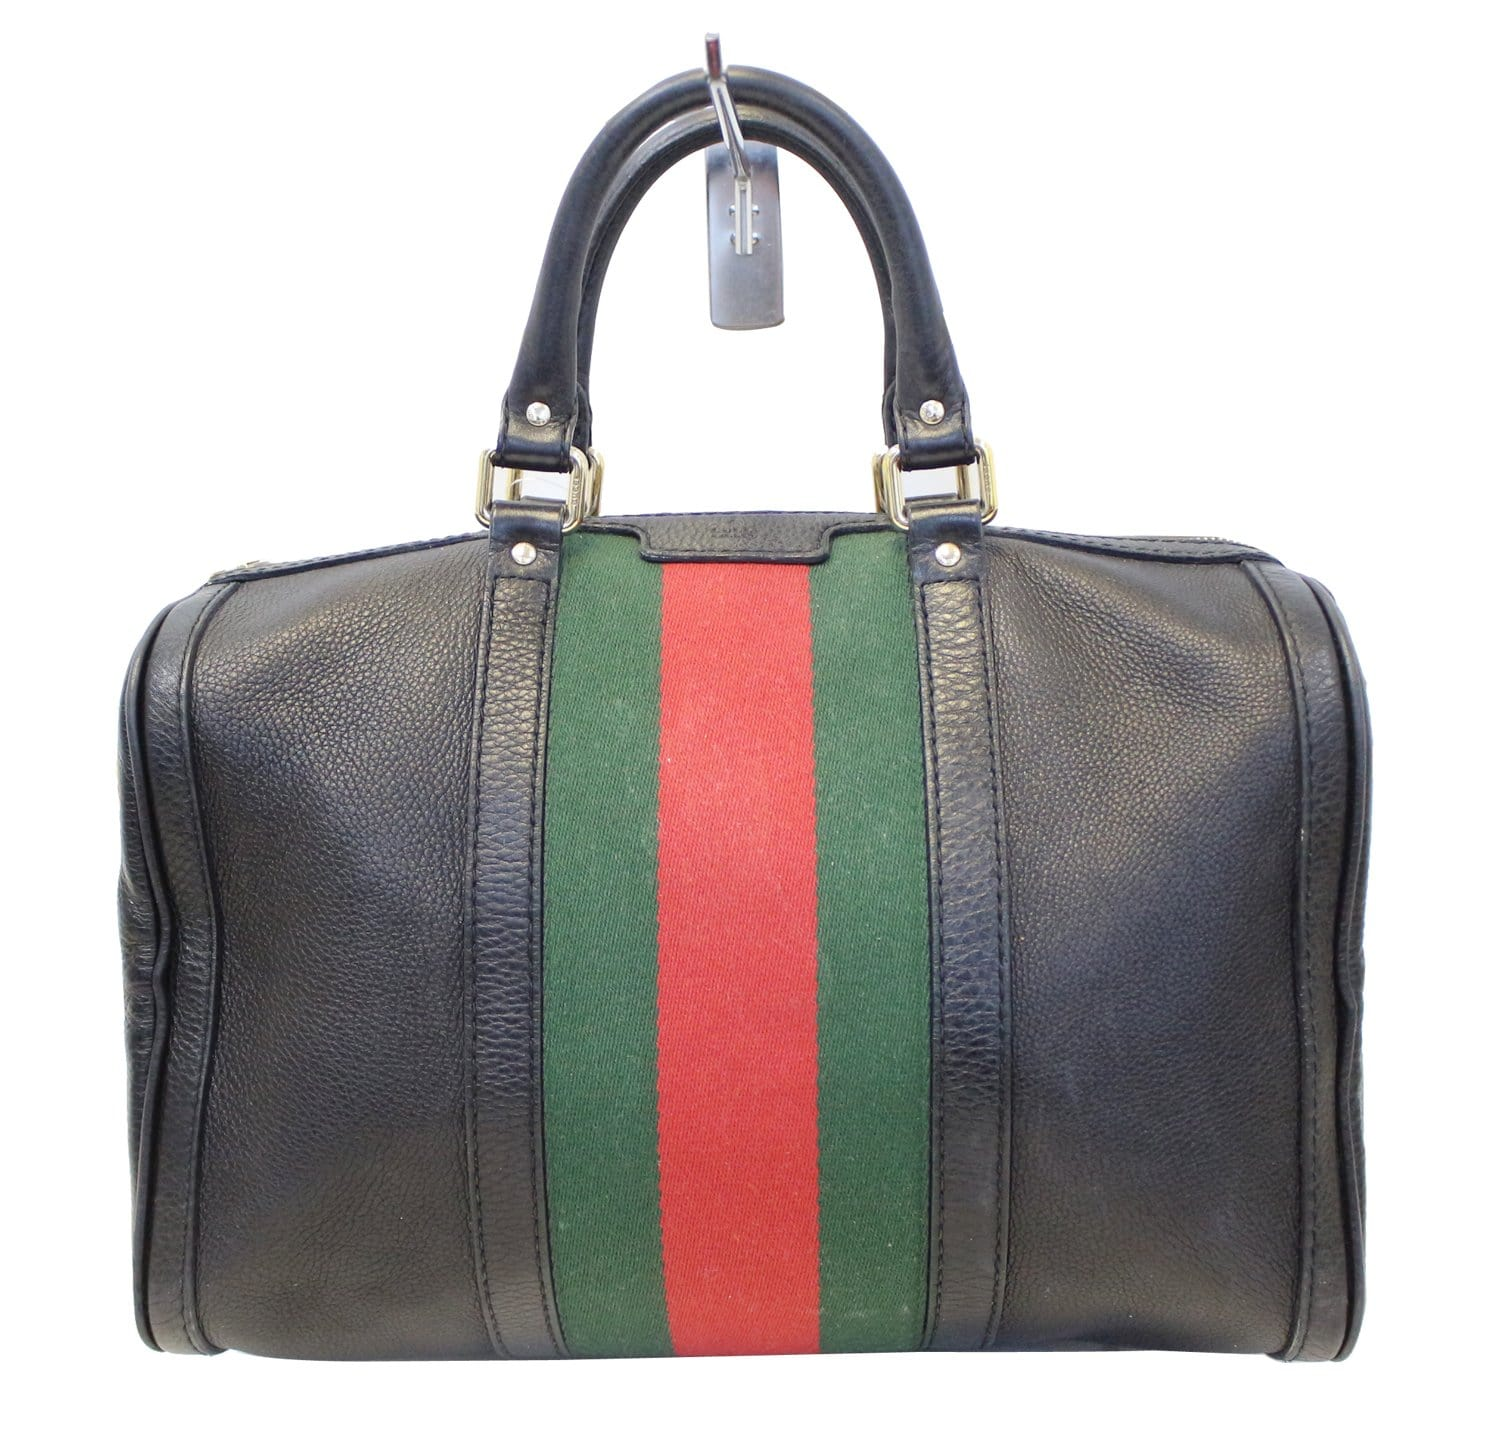 ff7b62bd164 GUCCI Vintage Web Medium Boston Bag with Signature Web